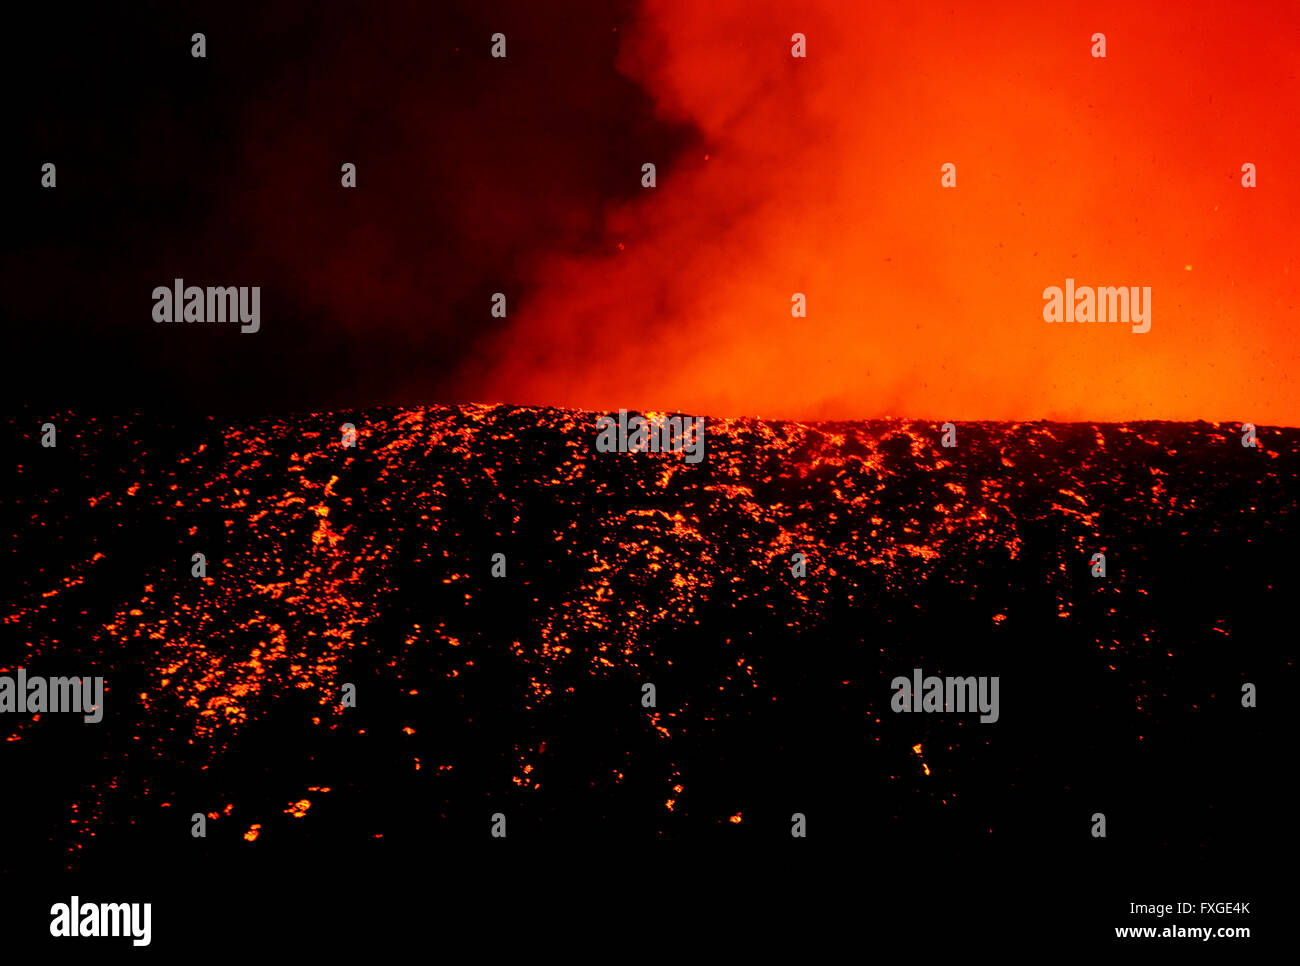 the newly erupting Nyamulagira  volcano in the Virunga National Park in the Democratic Republic of Congo. - Stock Image